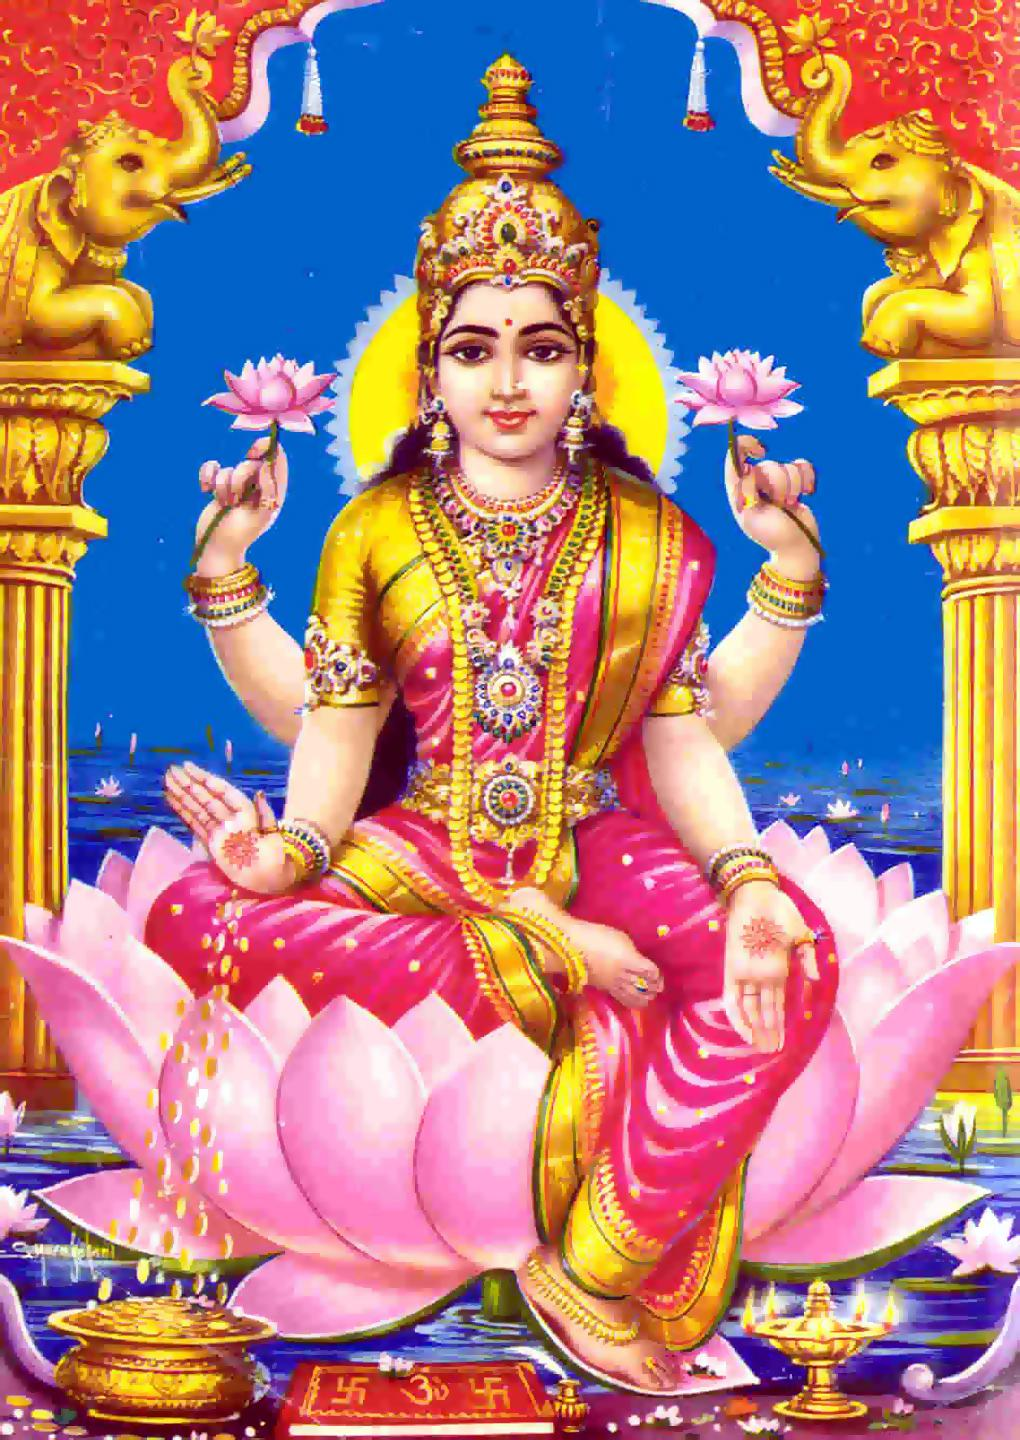 Laxmi Devi Images Hd Wallpapers 55 Wallpapers Adorable Wallpapers